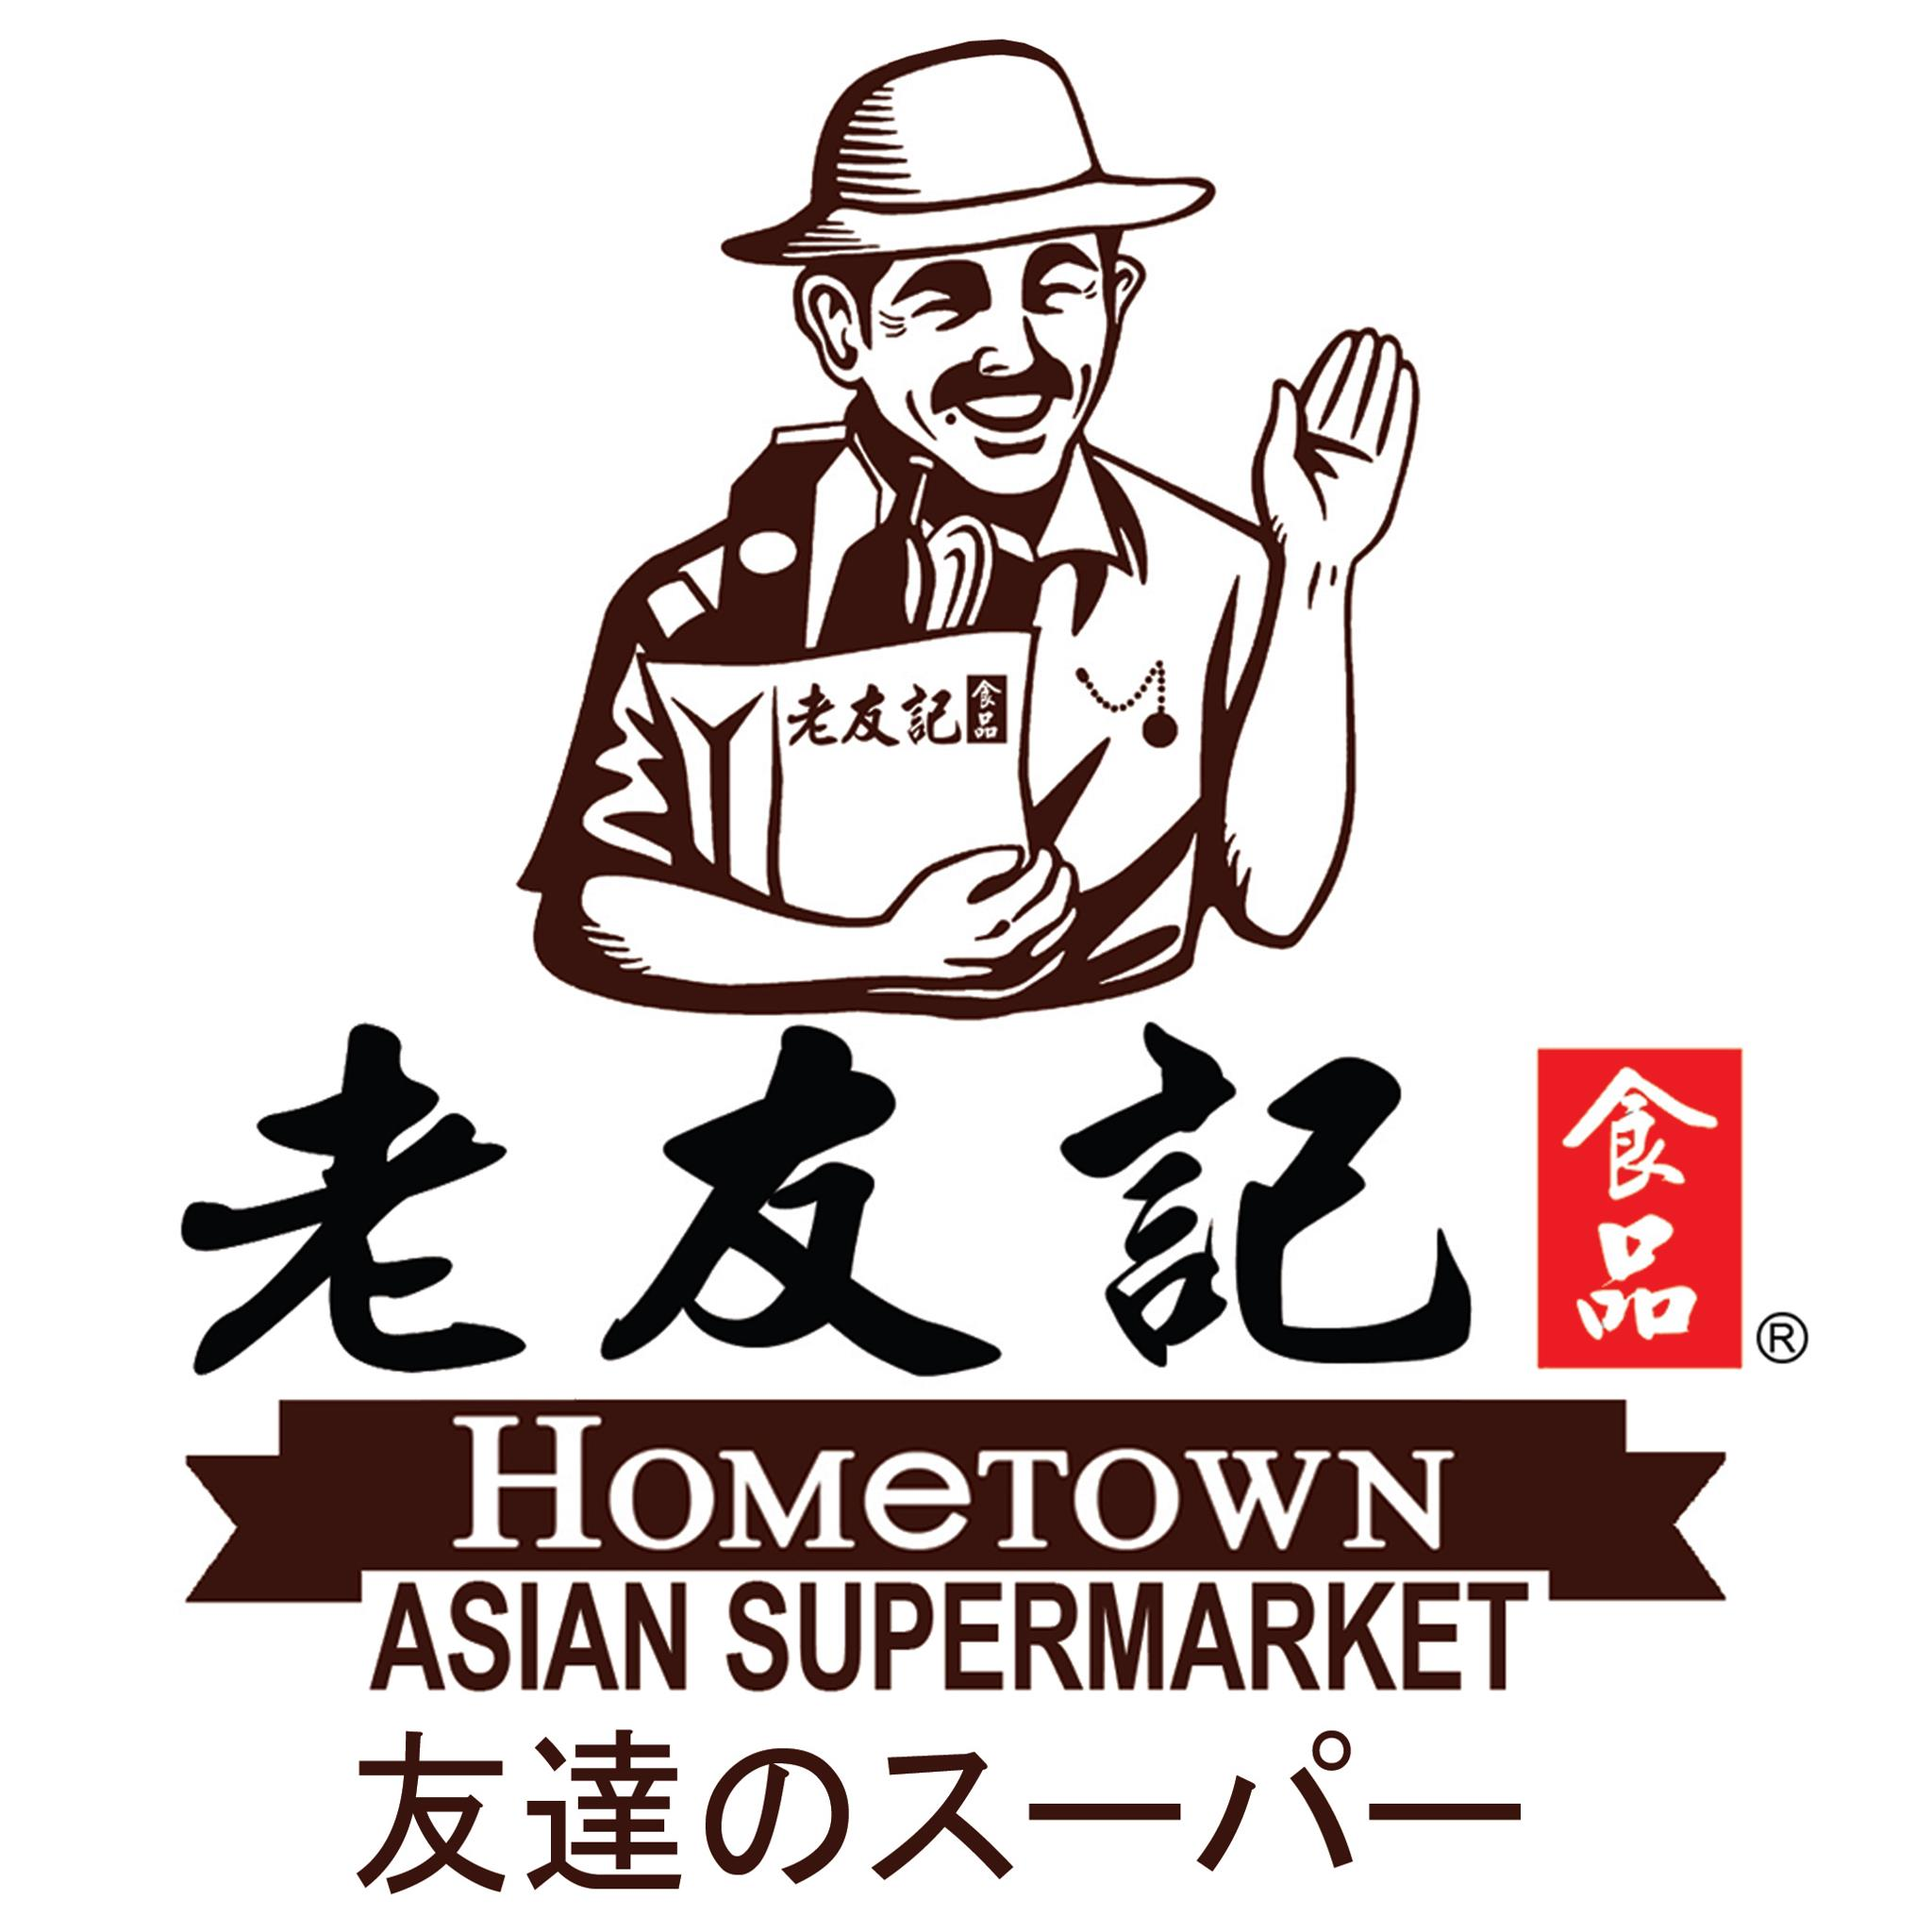 Hometown Asian Supermarket